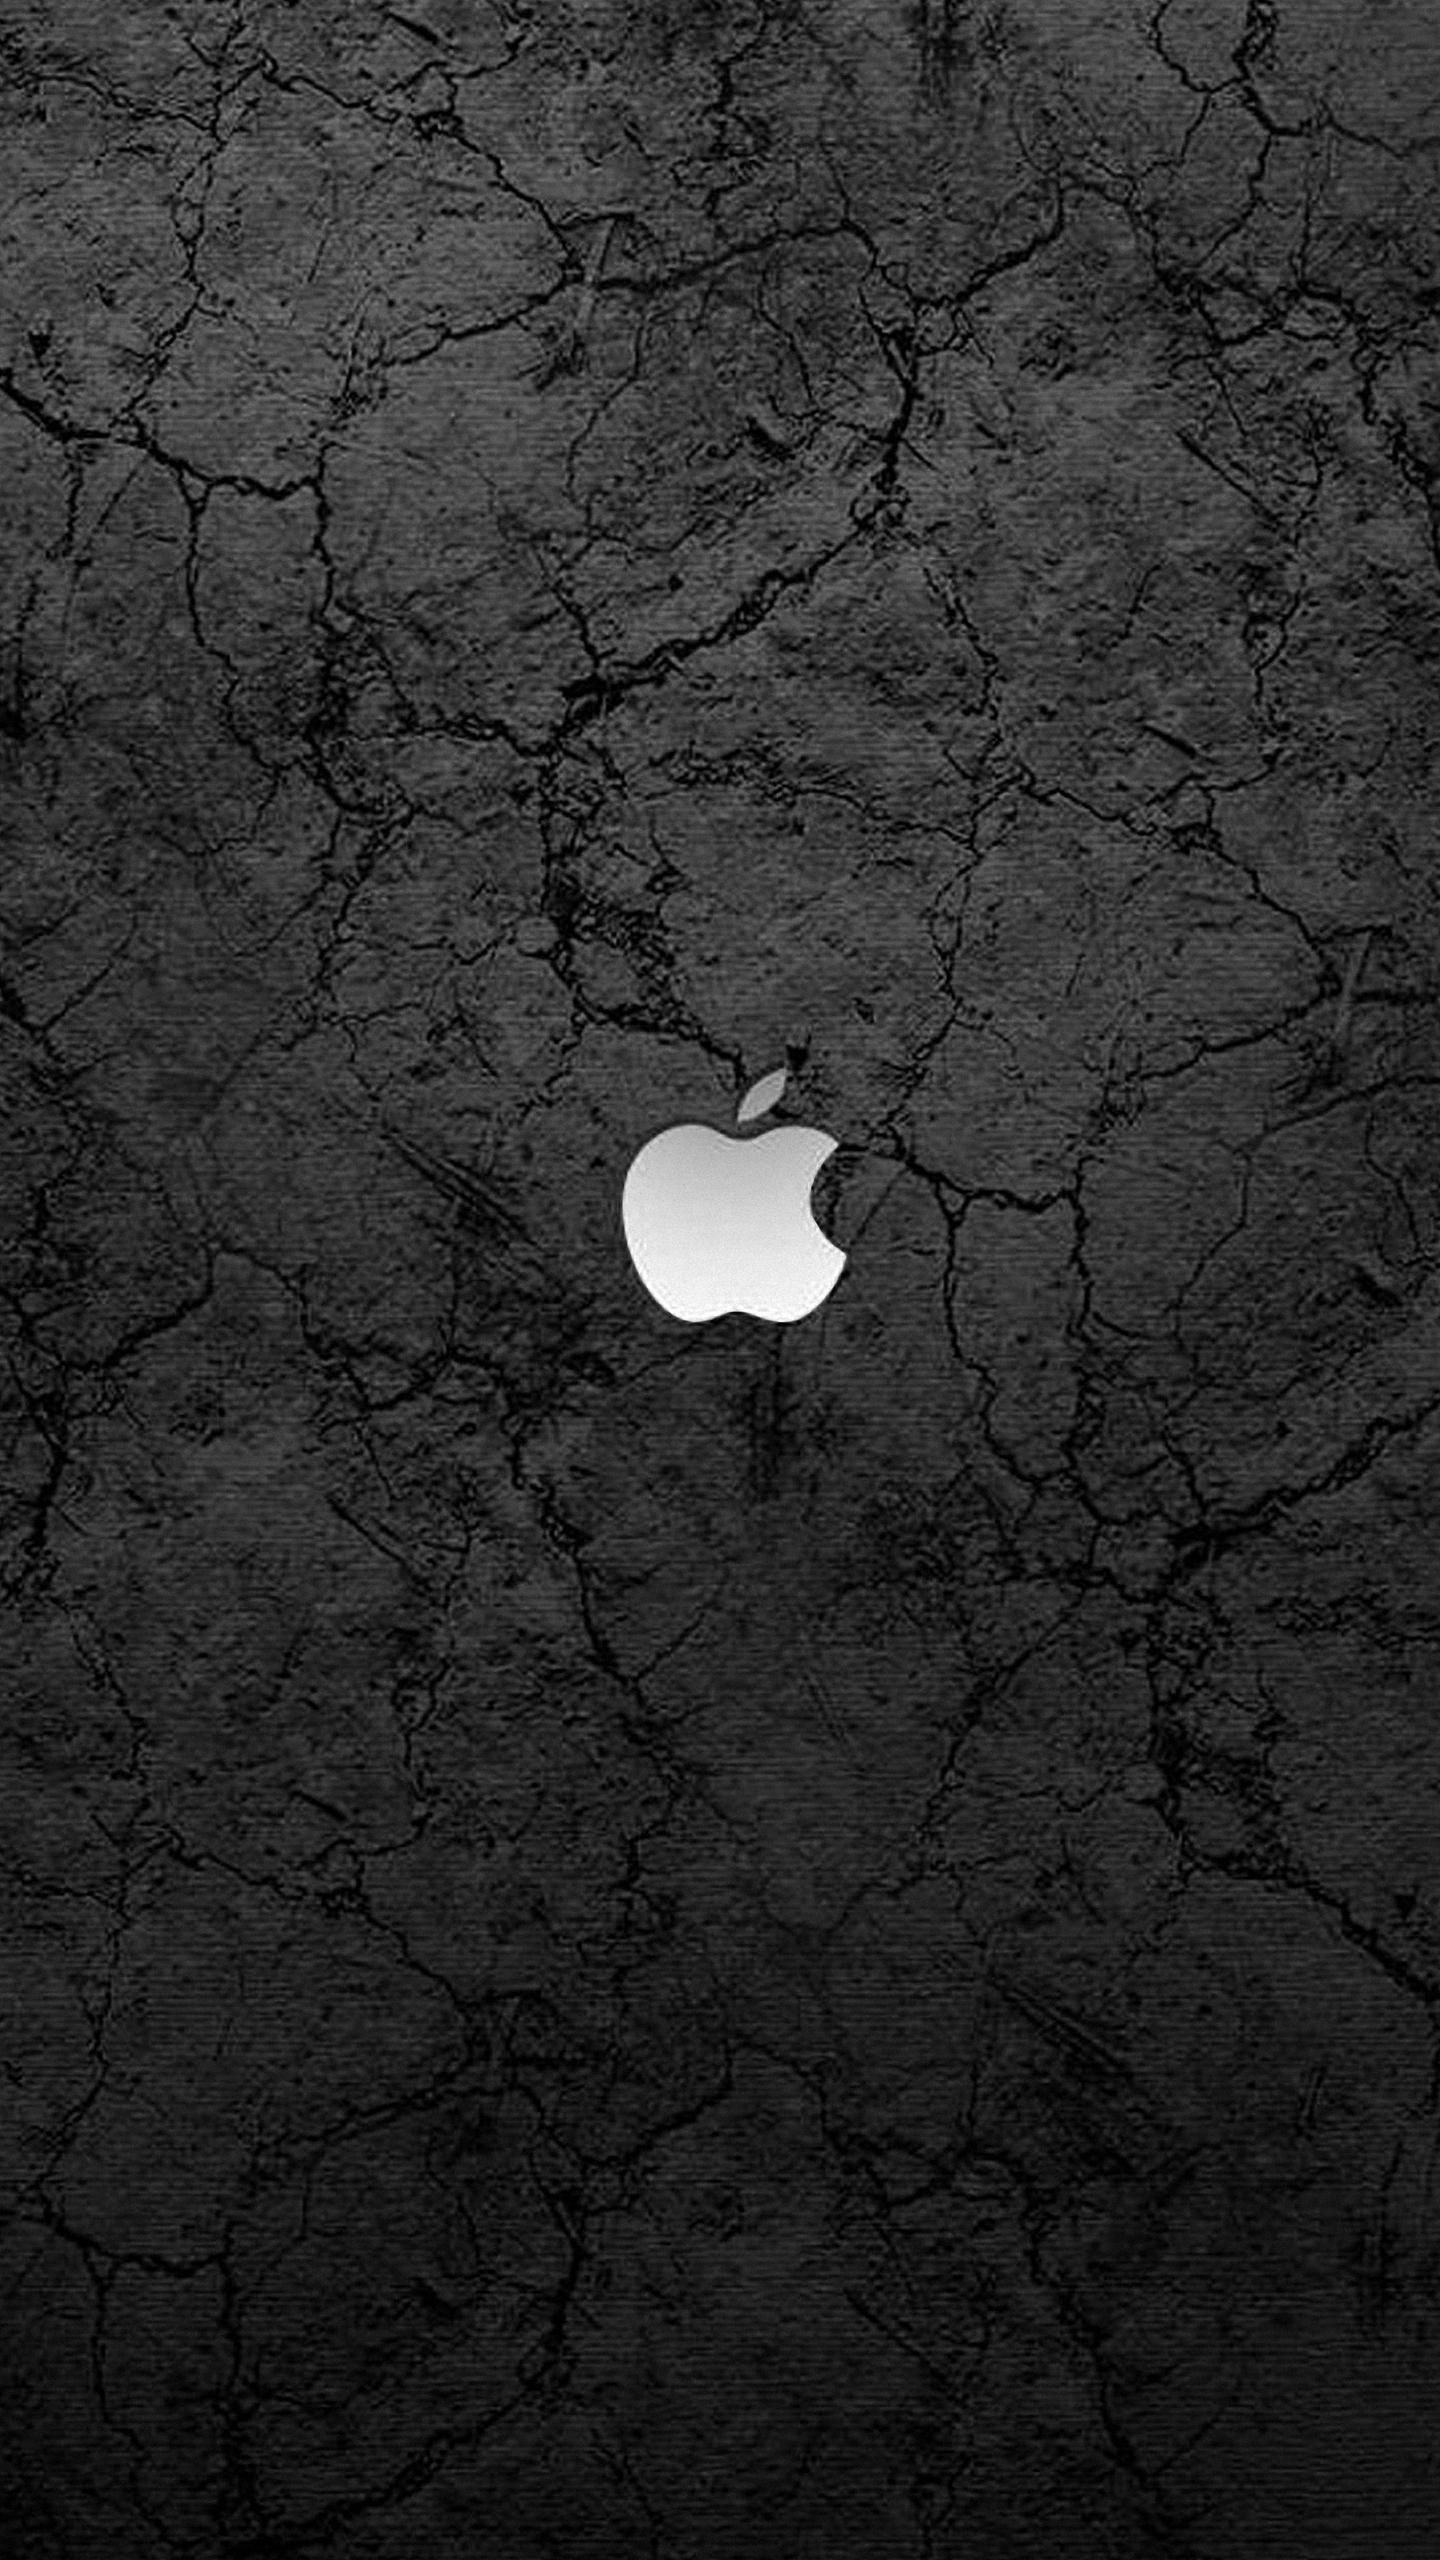 4k Wallpaper Iphone Dark 3d Wallpapers Iphone 6s Wallpaper Apple Wallpaper Iphone Black Apple Wallpaper